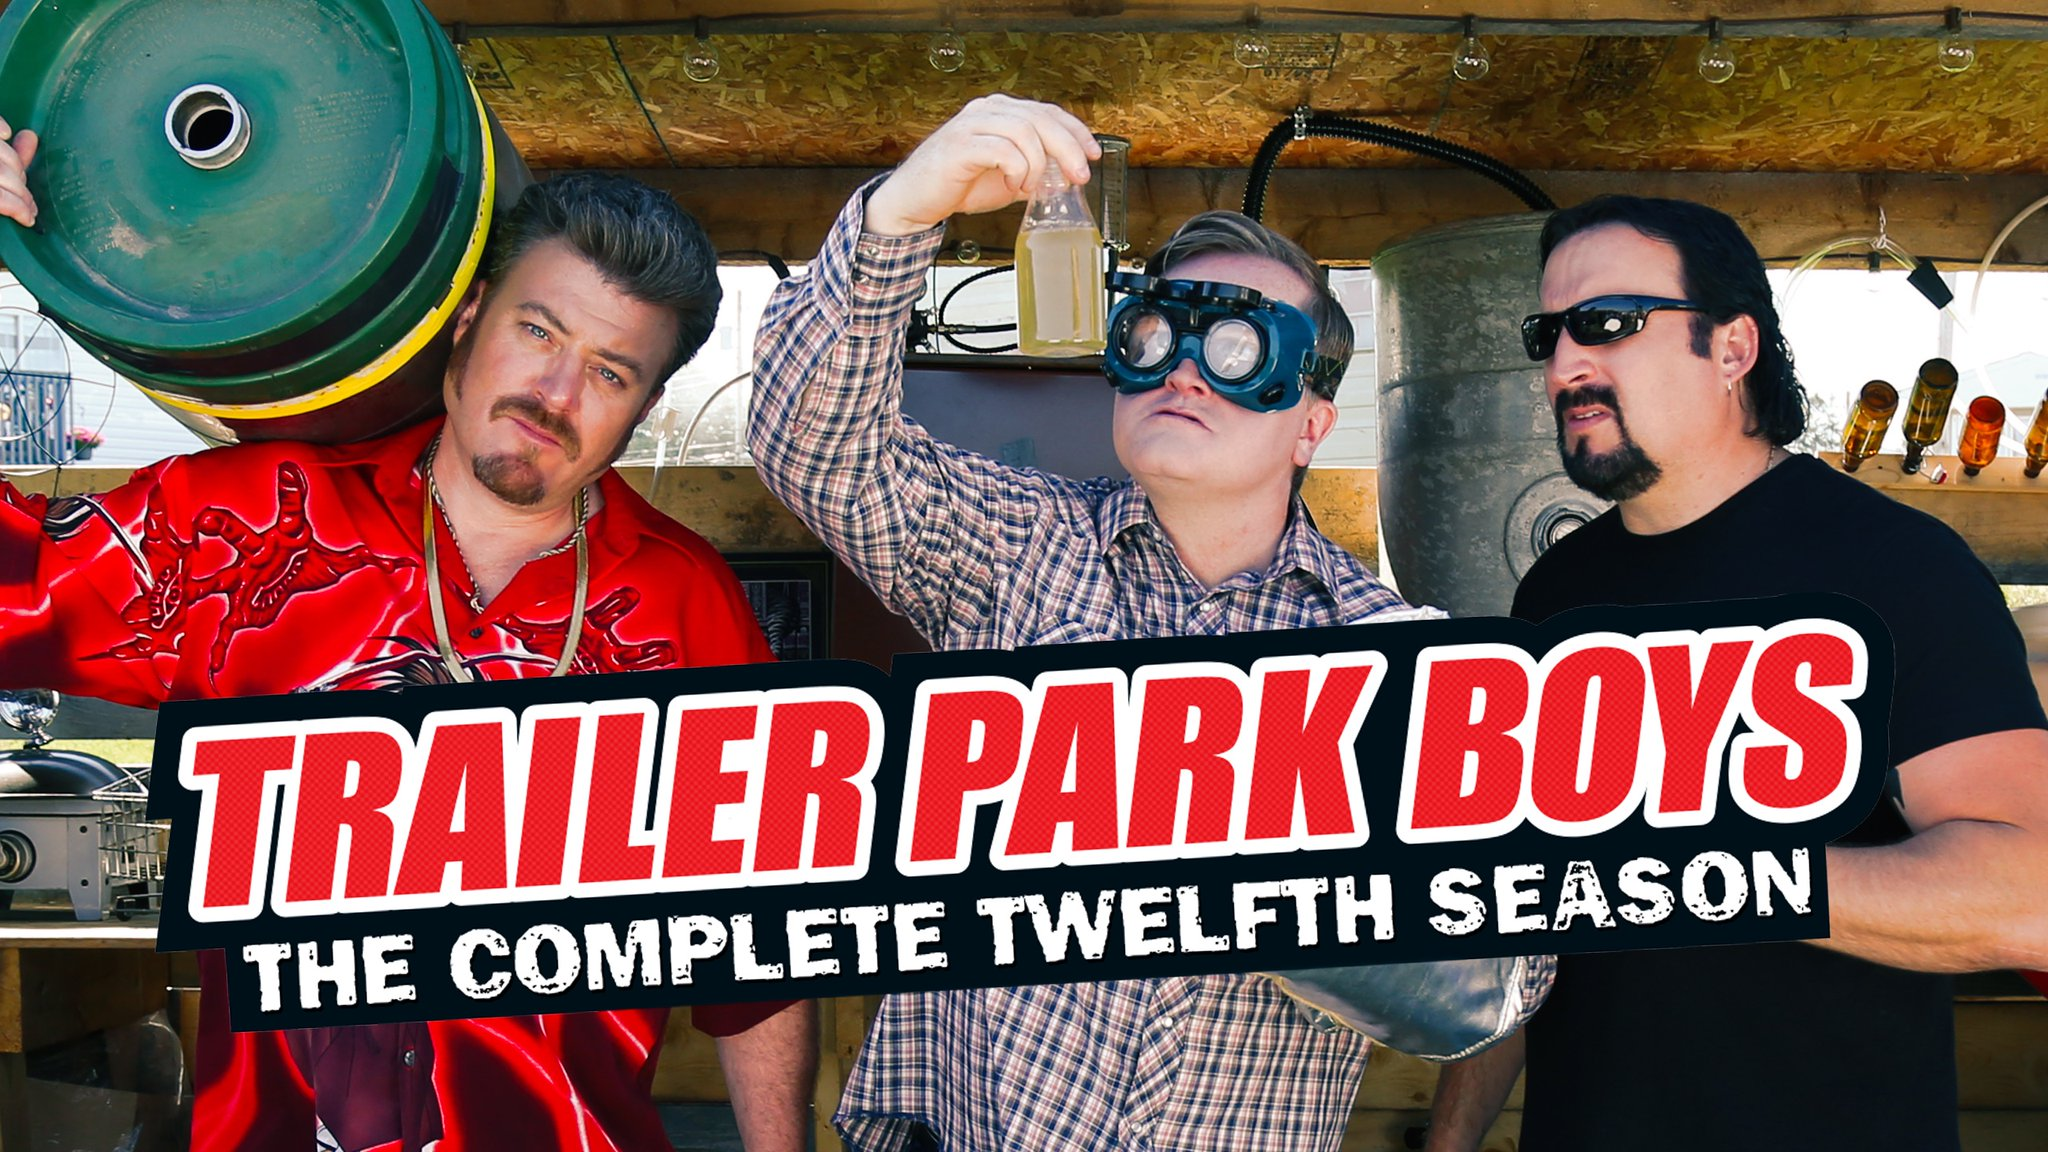 Trailer Park Boys Season 12